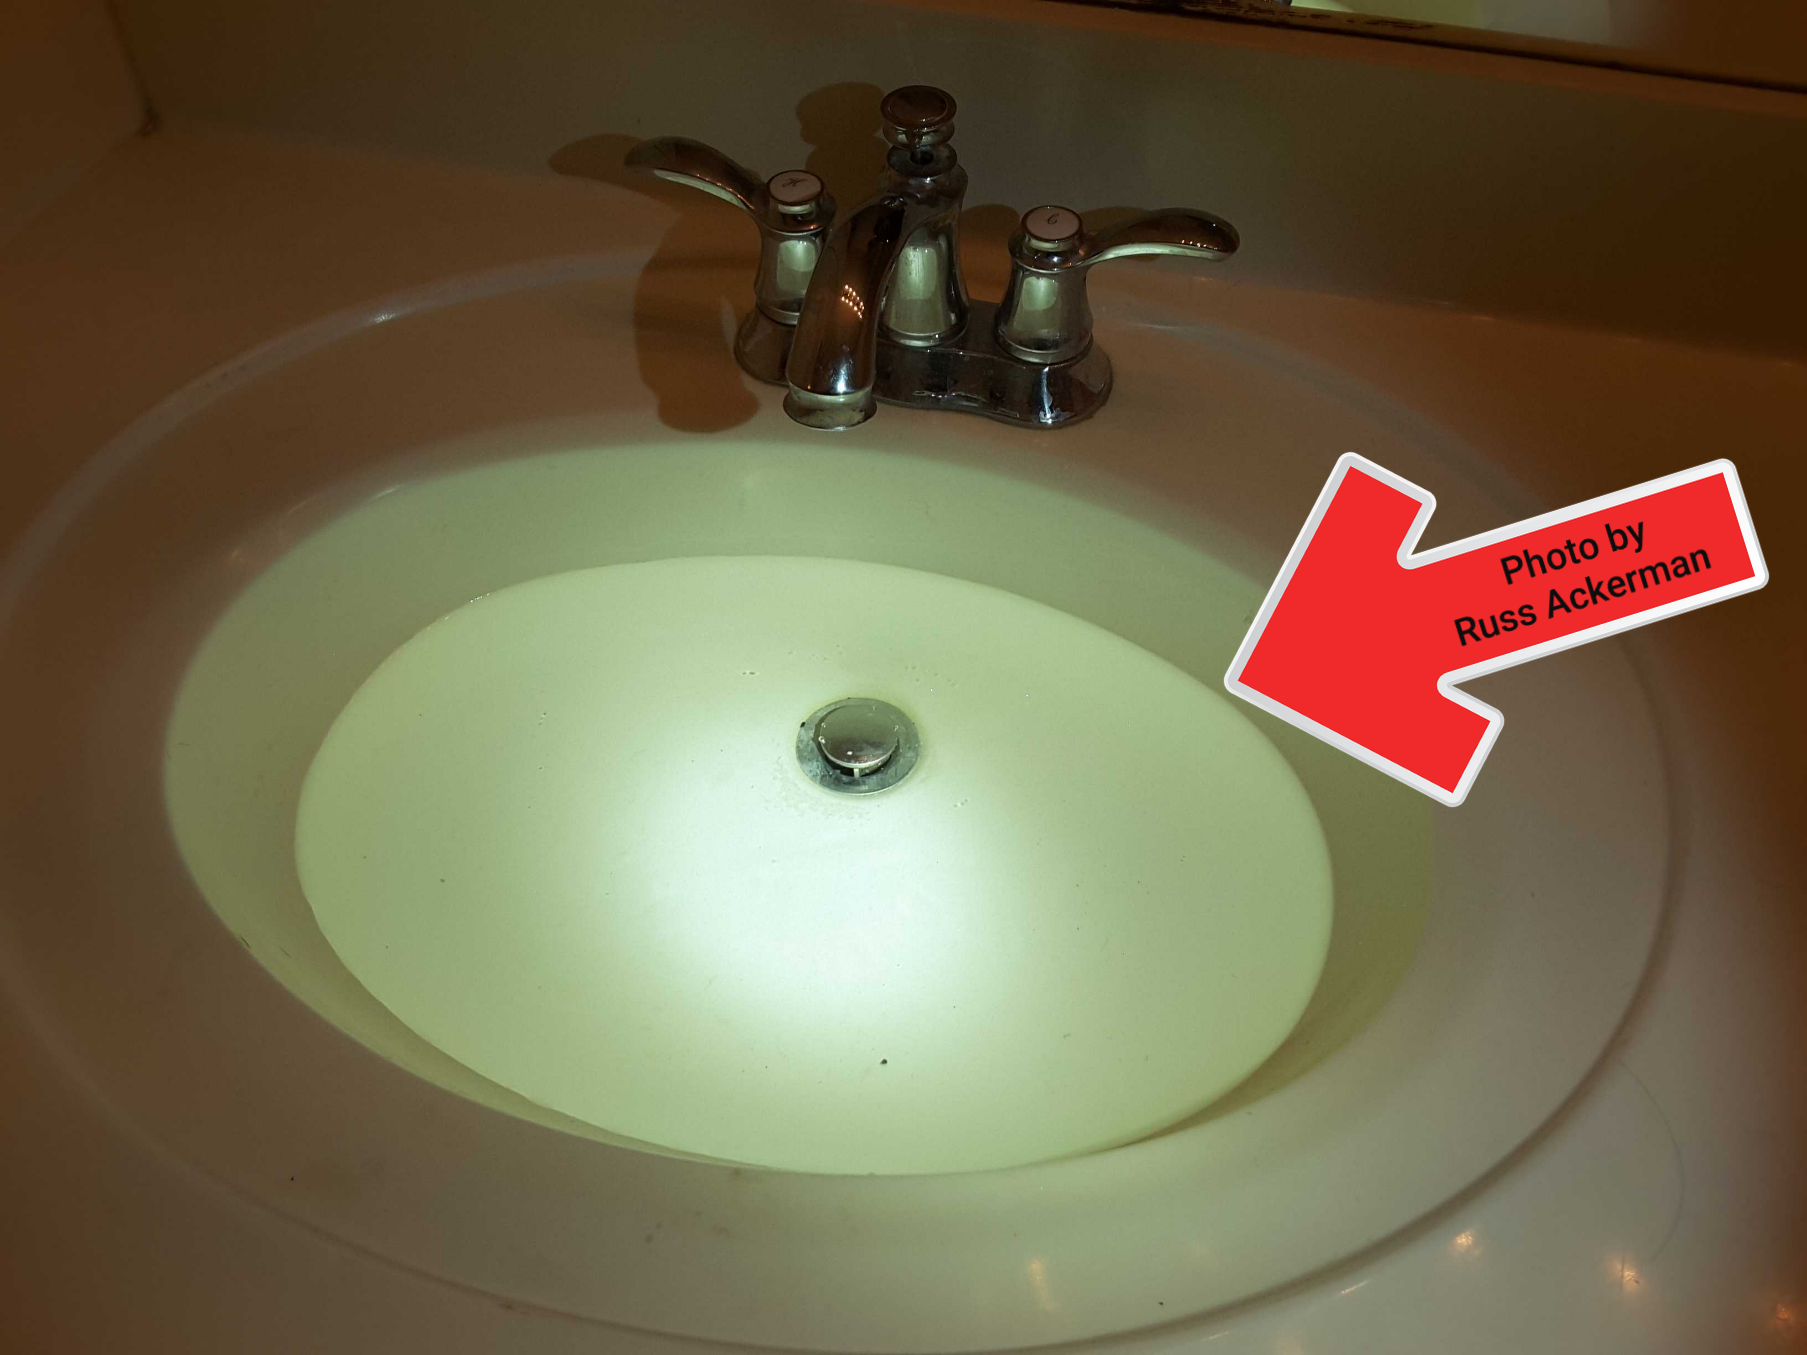 Master bathroom sinks get a lot of use and need regular maintenance to keep them operable. Cleaning drains and repairing or adjusting drain stoppers will avoid backups.